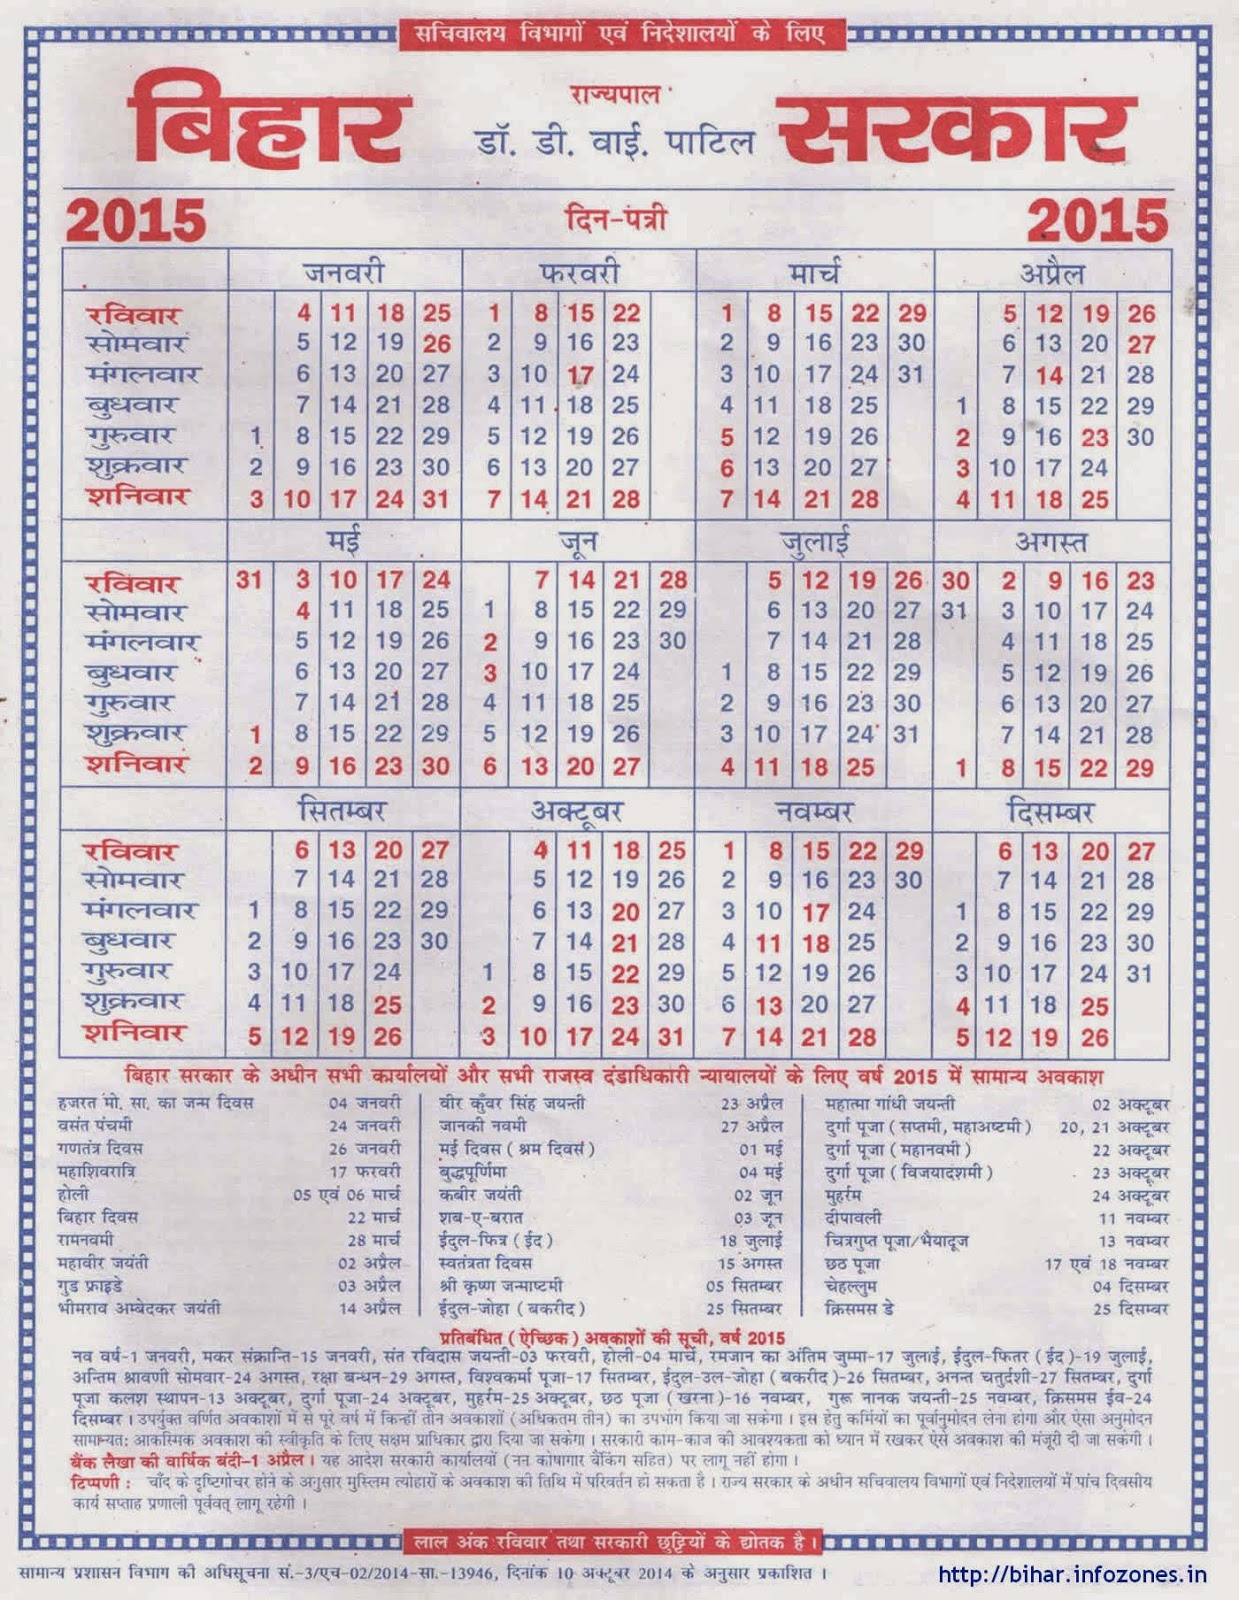 calendar of bihar government 2018 calendar printable free Government Calendar With Holidays 2018 erdferdf